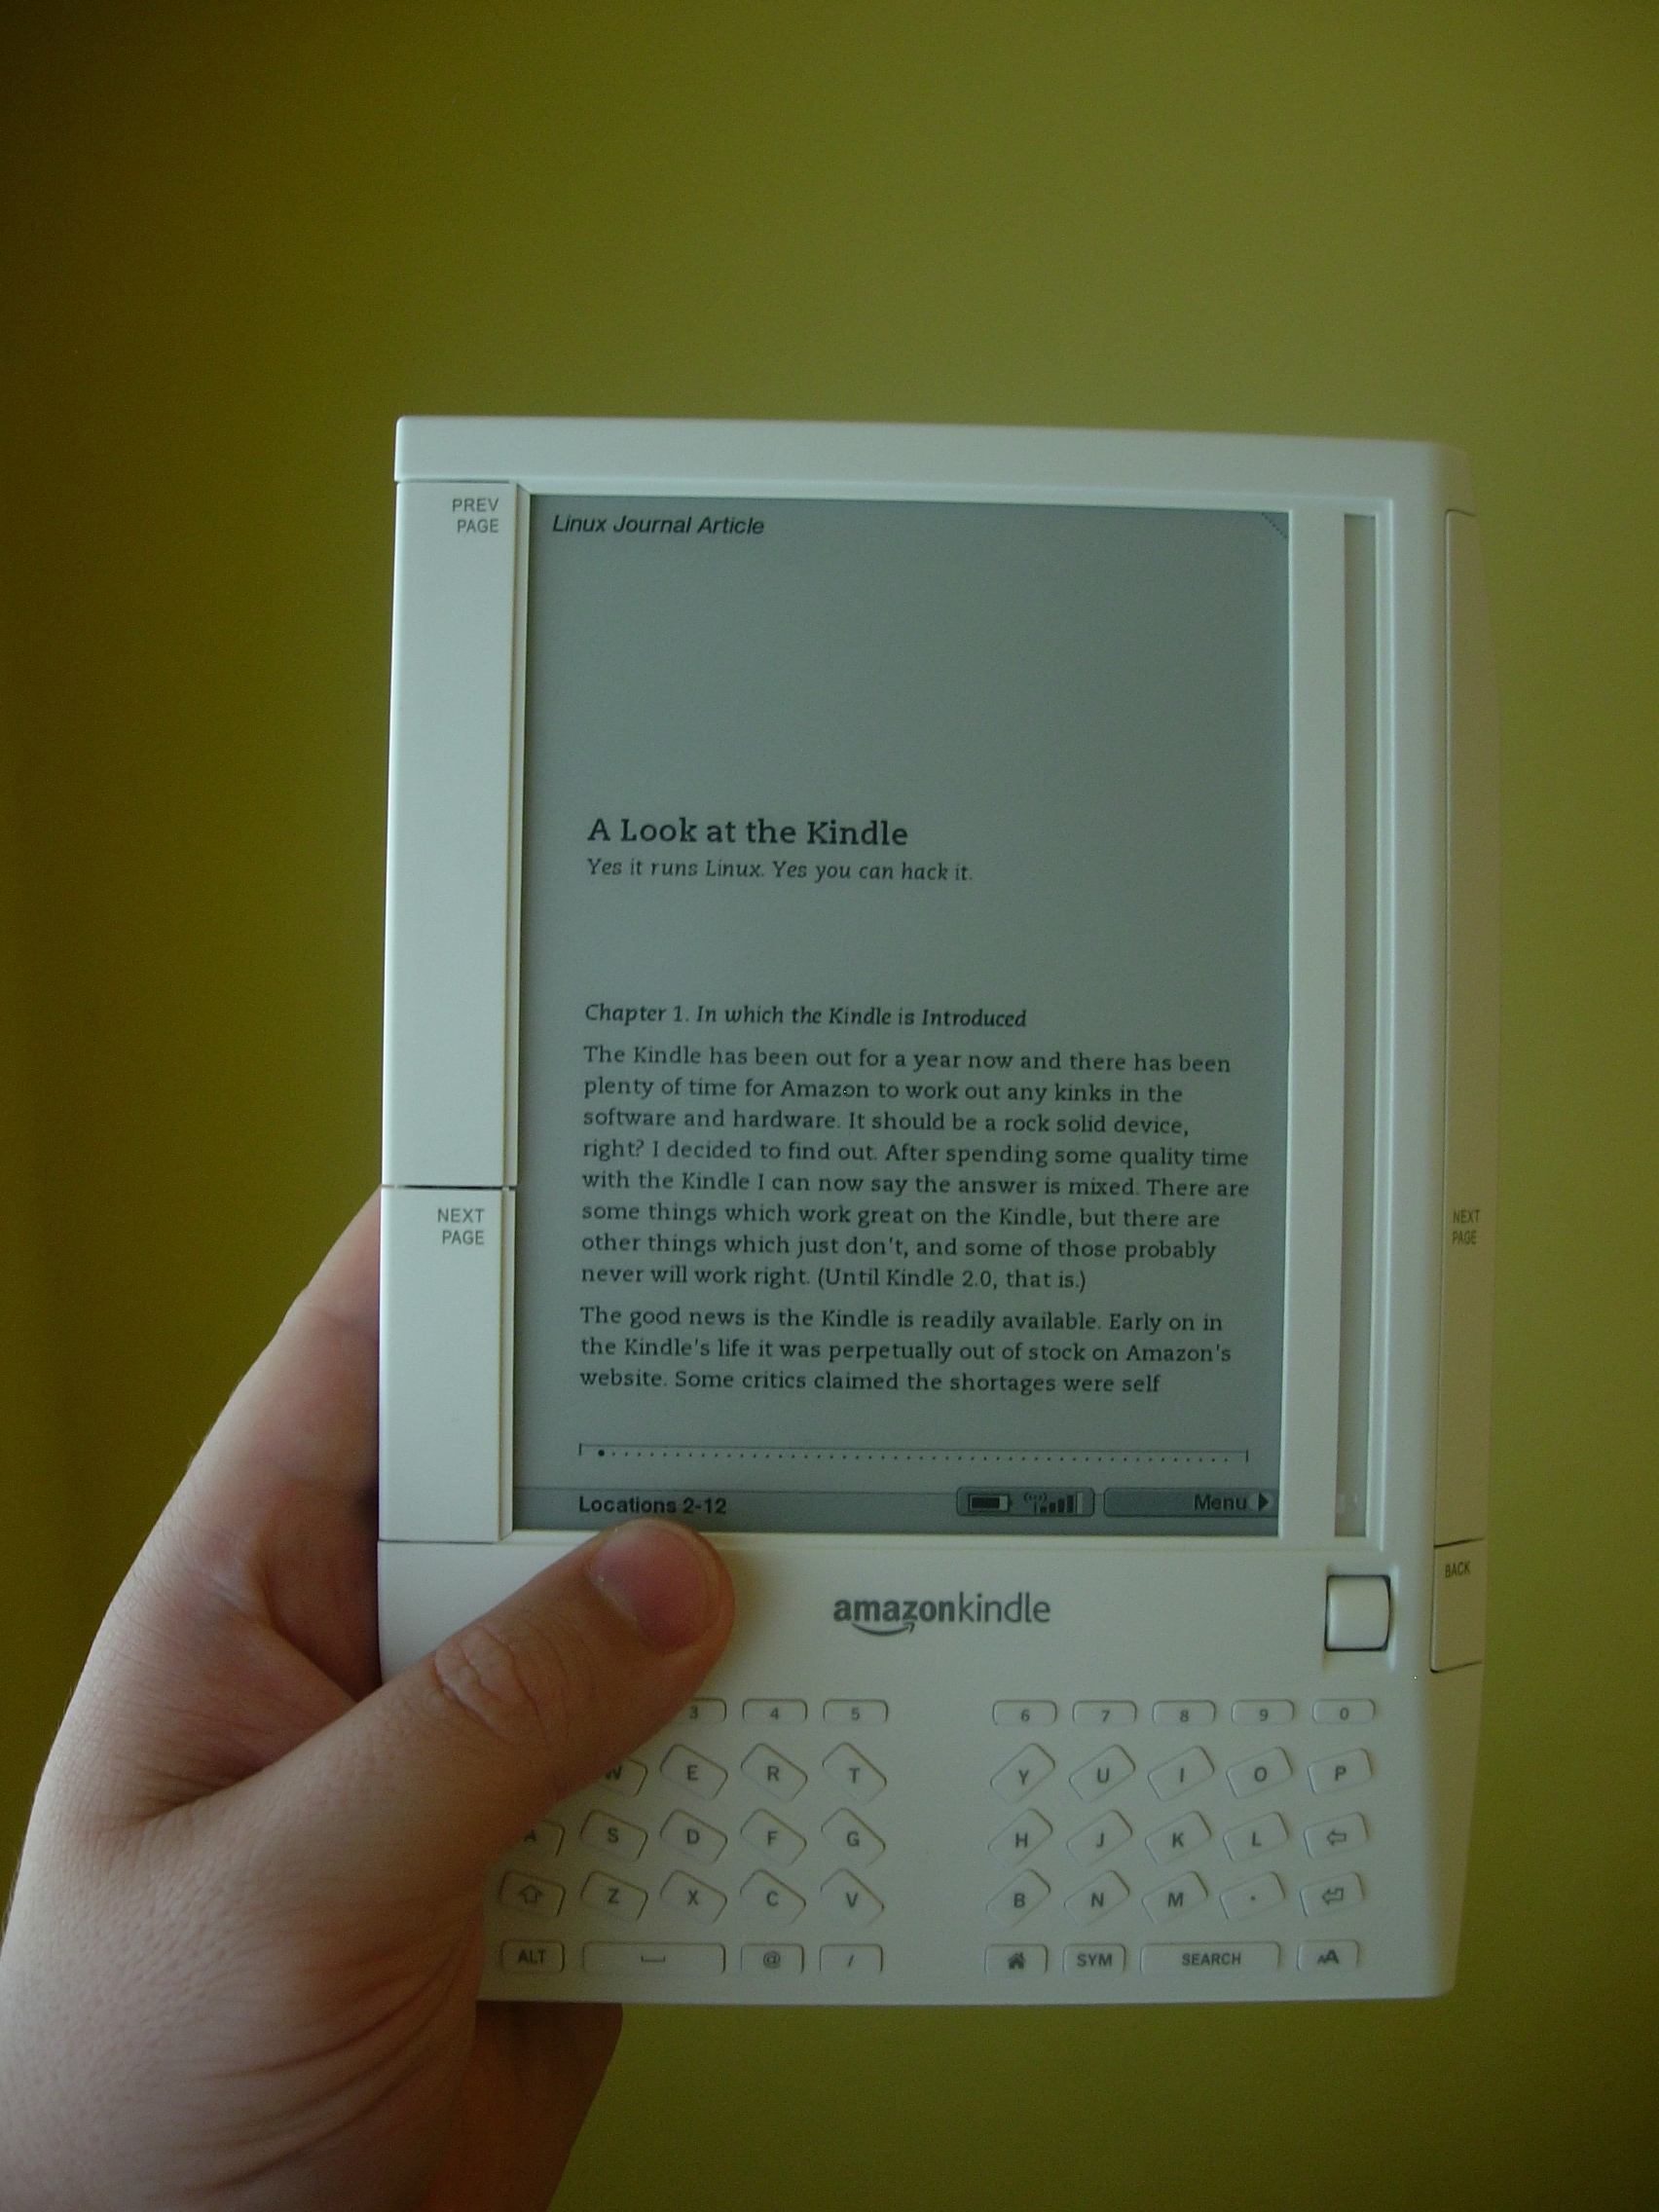 A Look at the Kindle